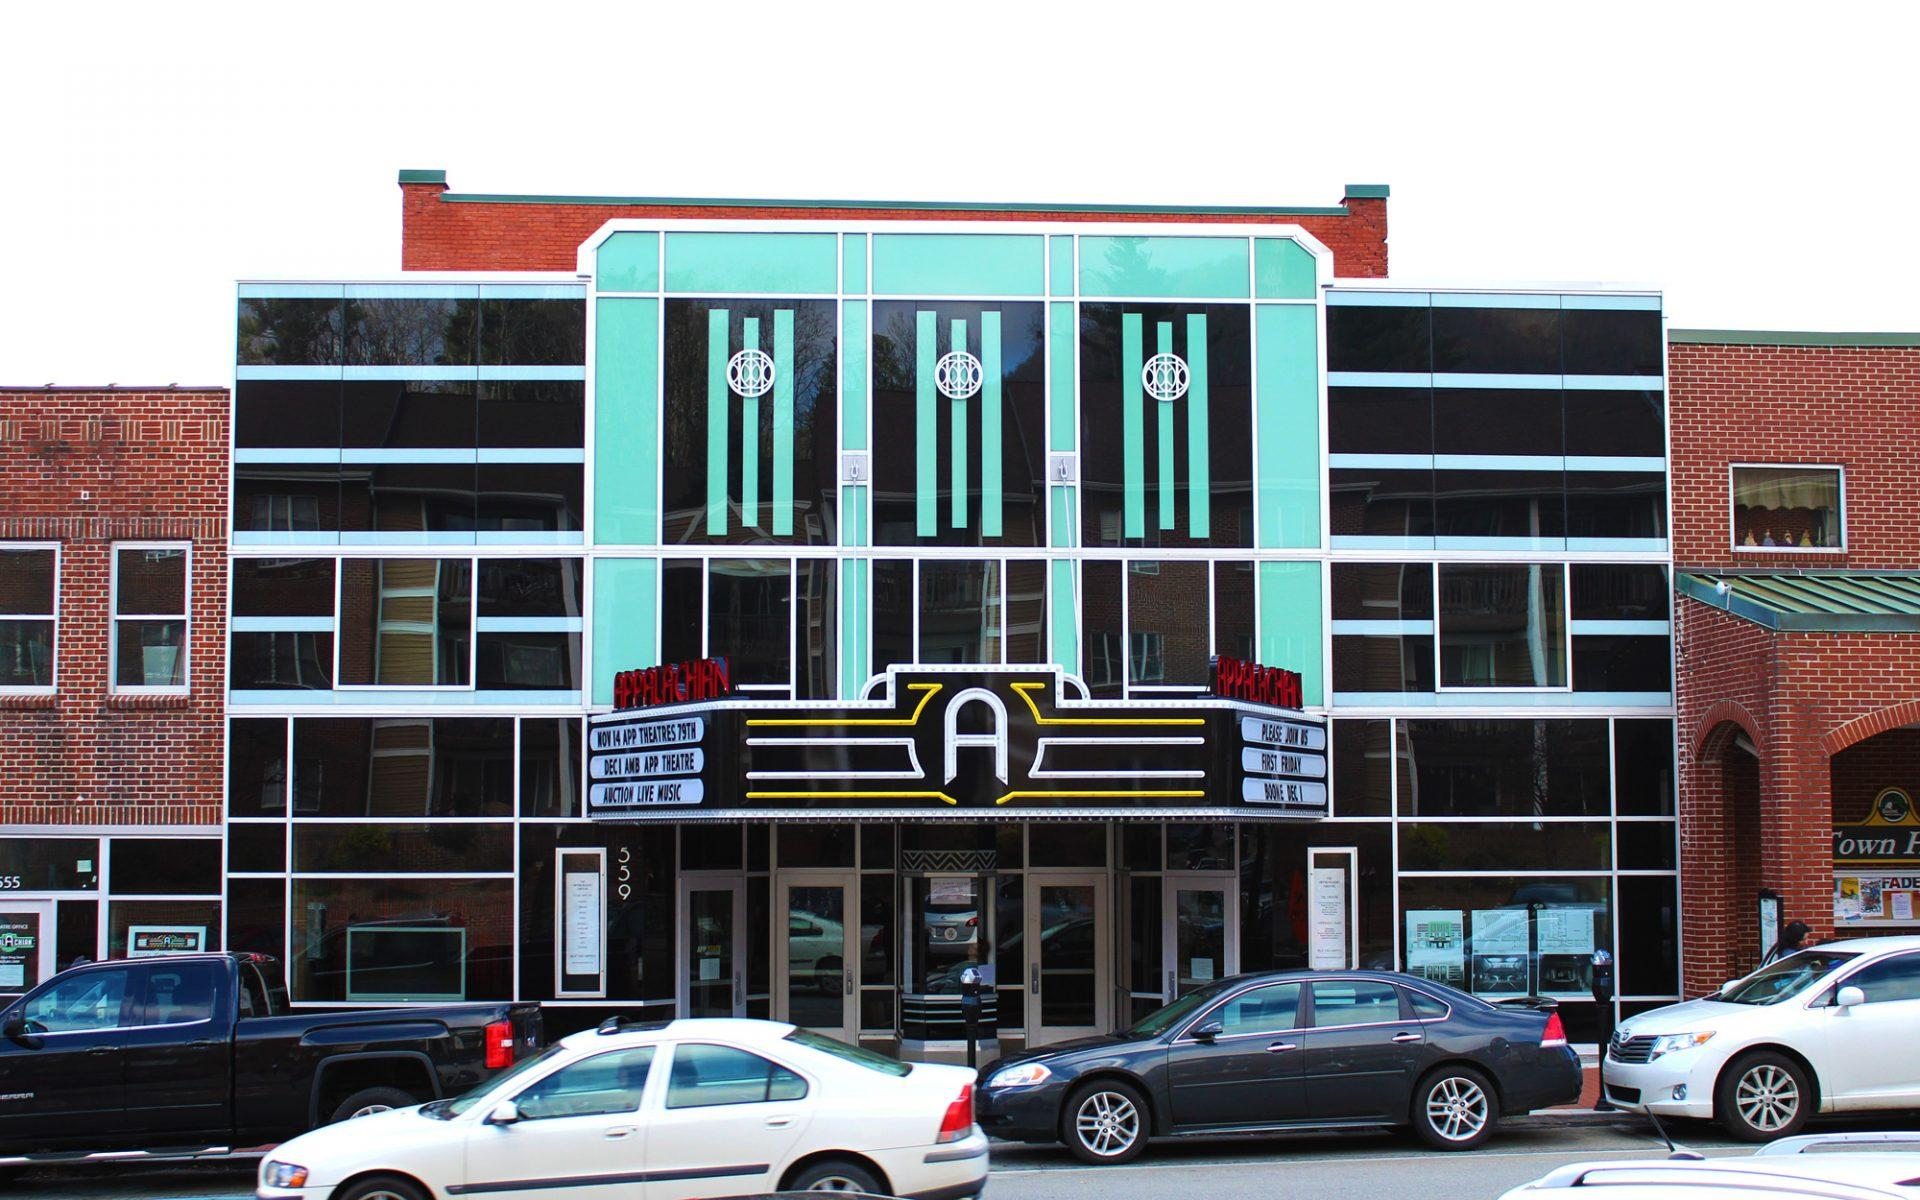 The Appalachian Theatre on King Street. The theatre has been a historical landmark in Boone for decades.